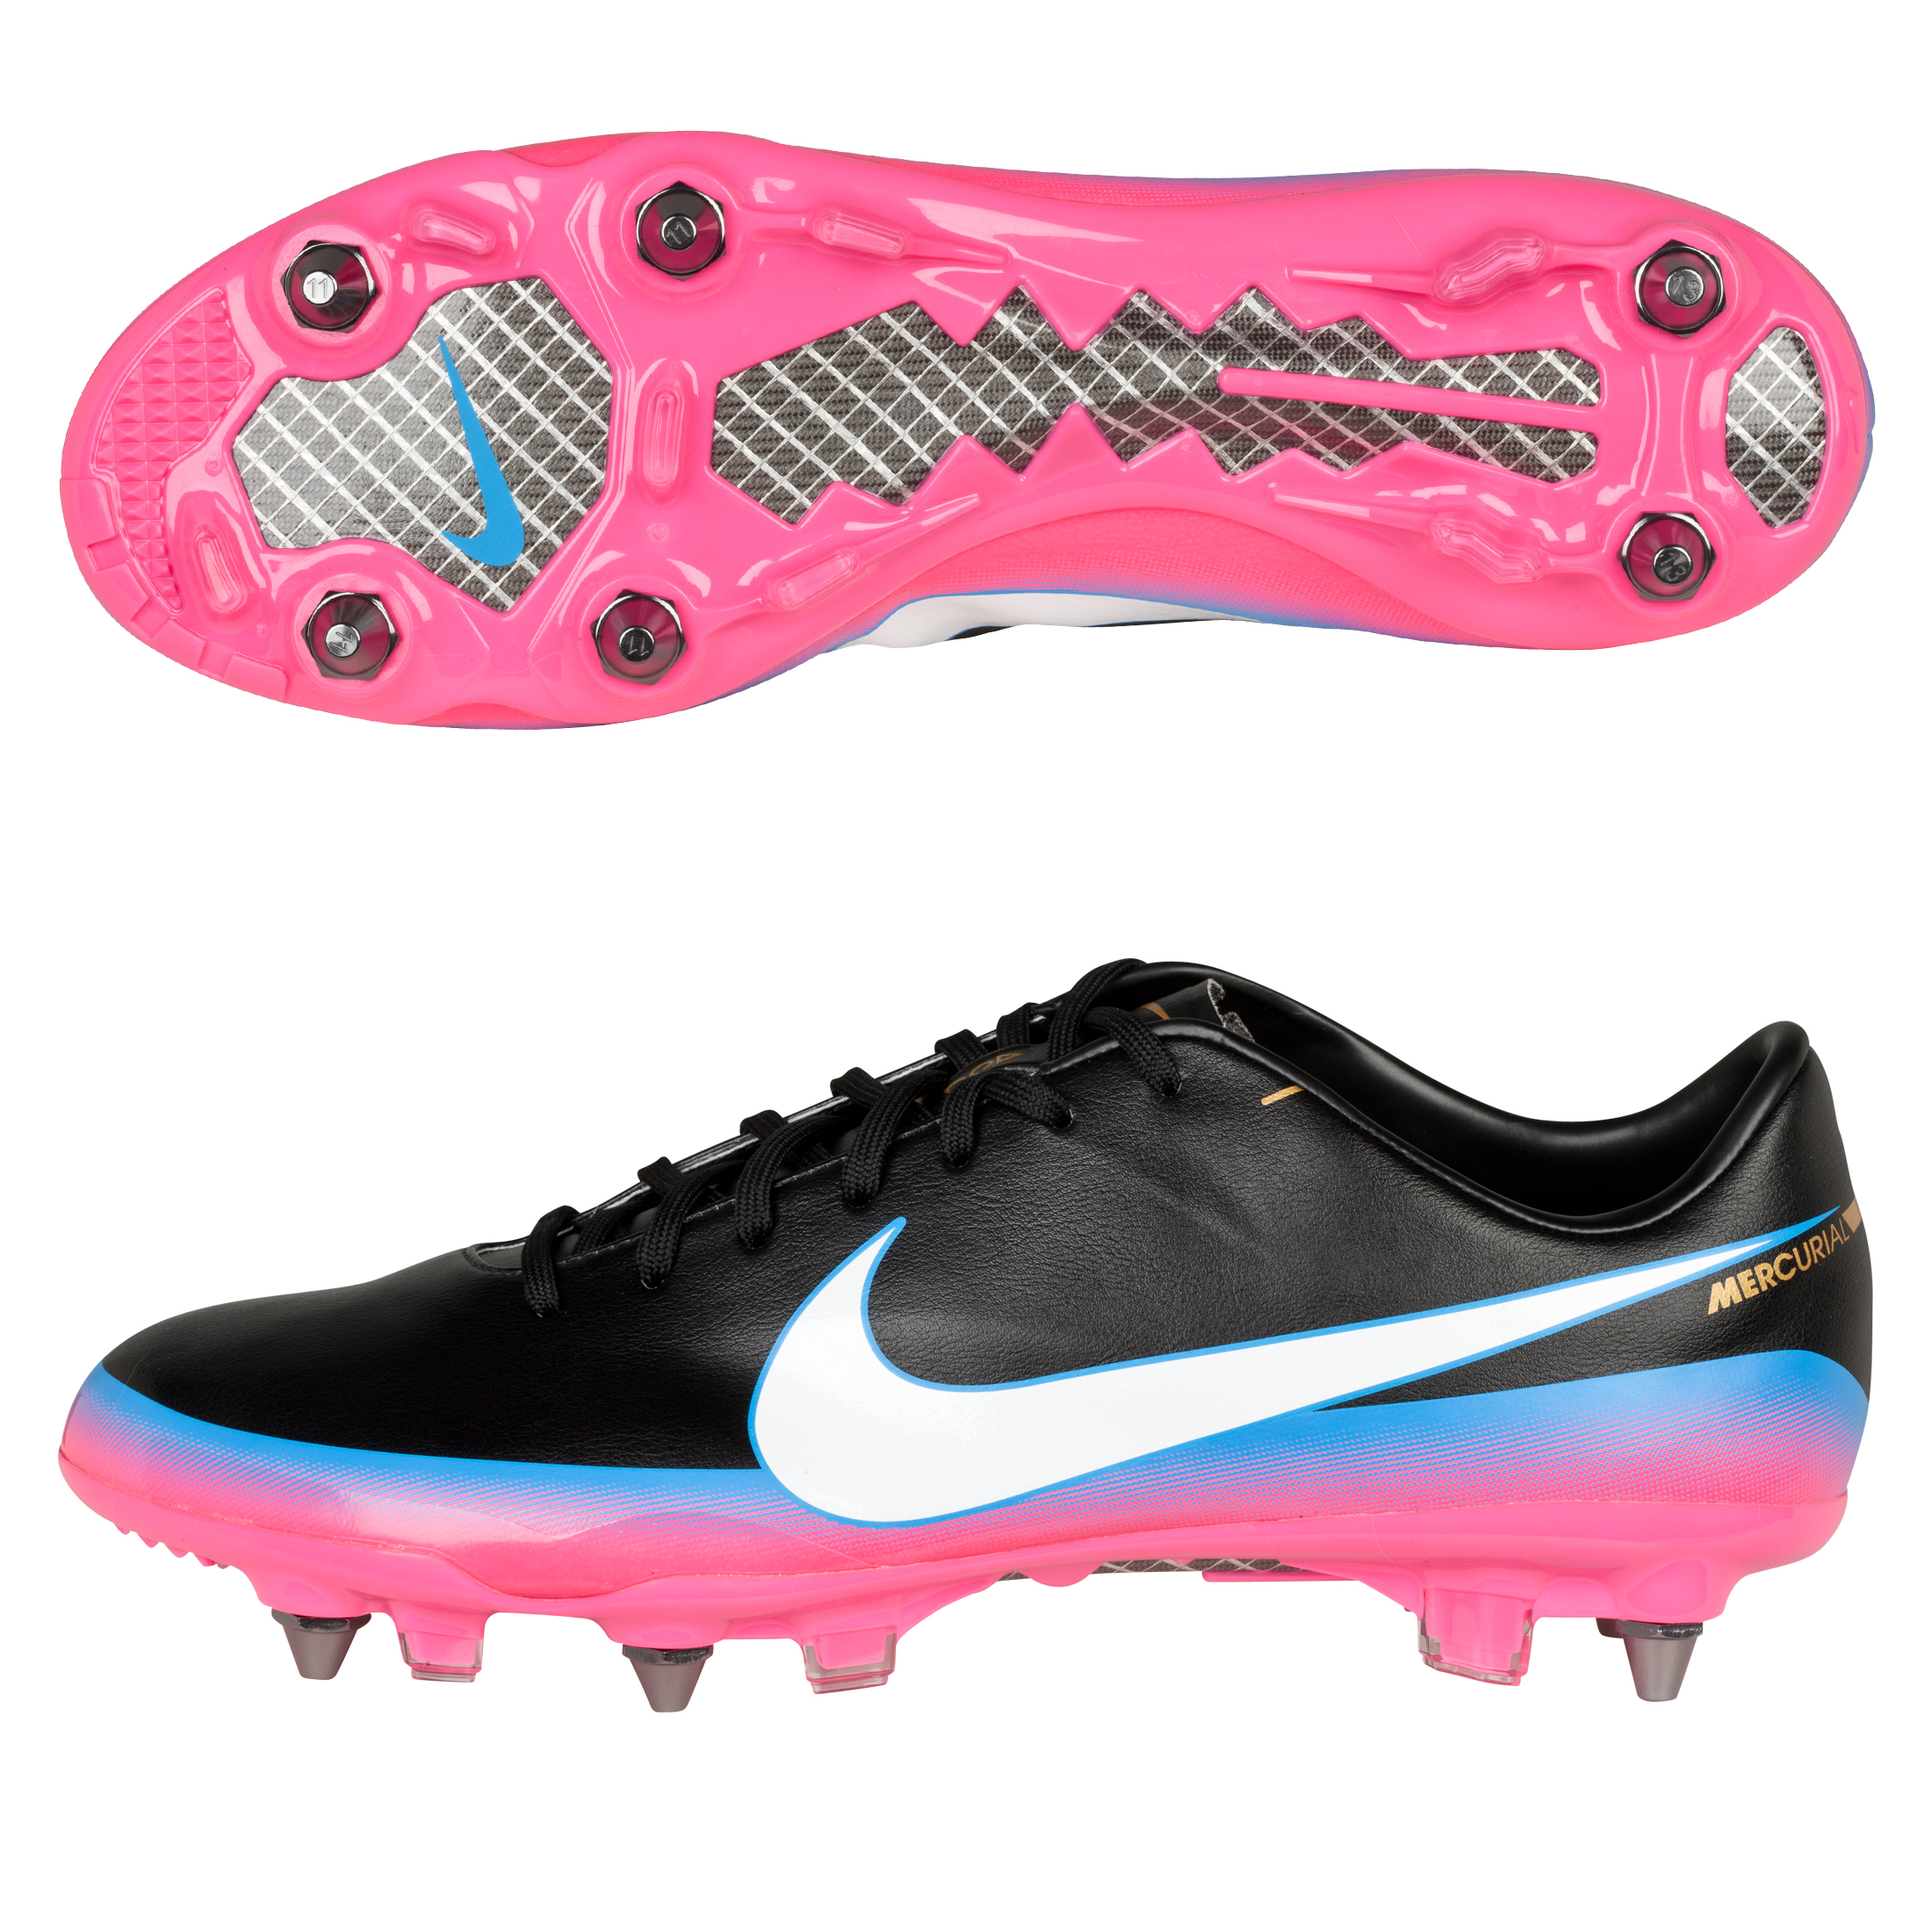 Nike Mercurial Vapor III CR7 Soft Ground Pro Football Boots - Black/White/Blue Glow/Pink Flash